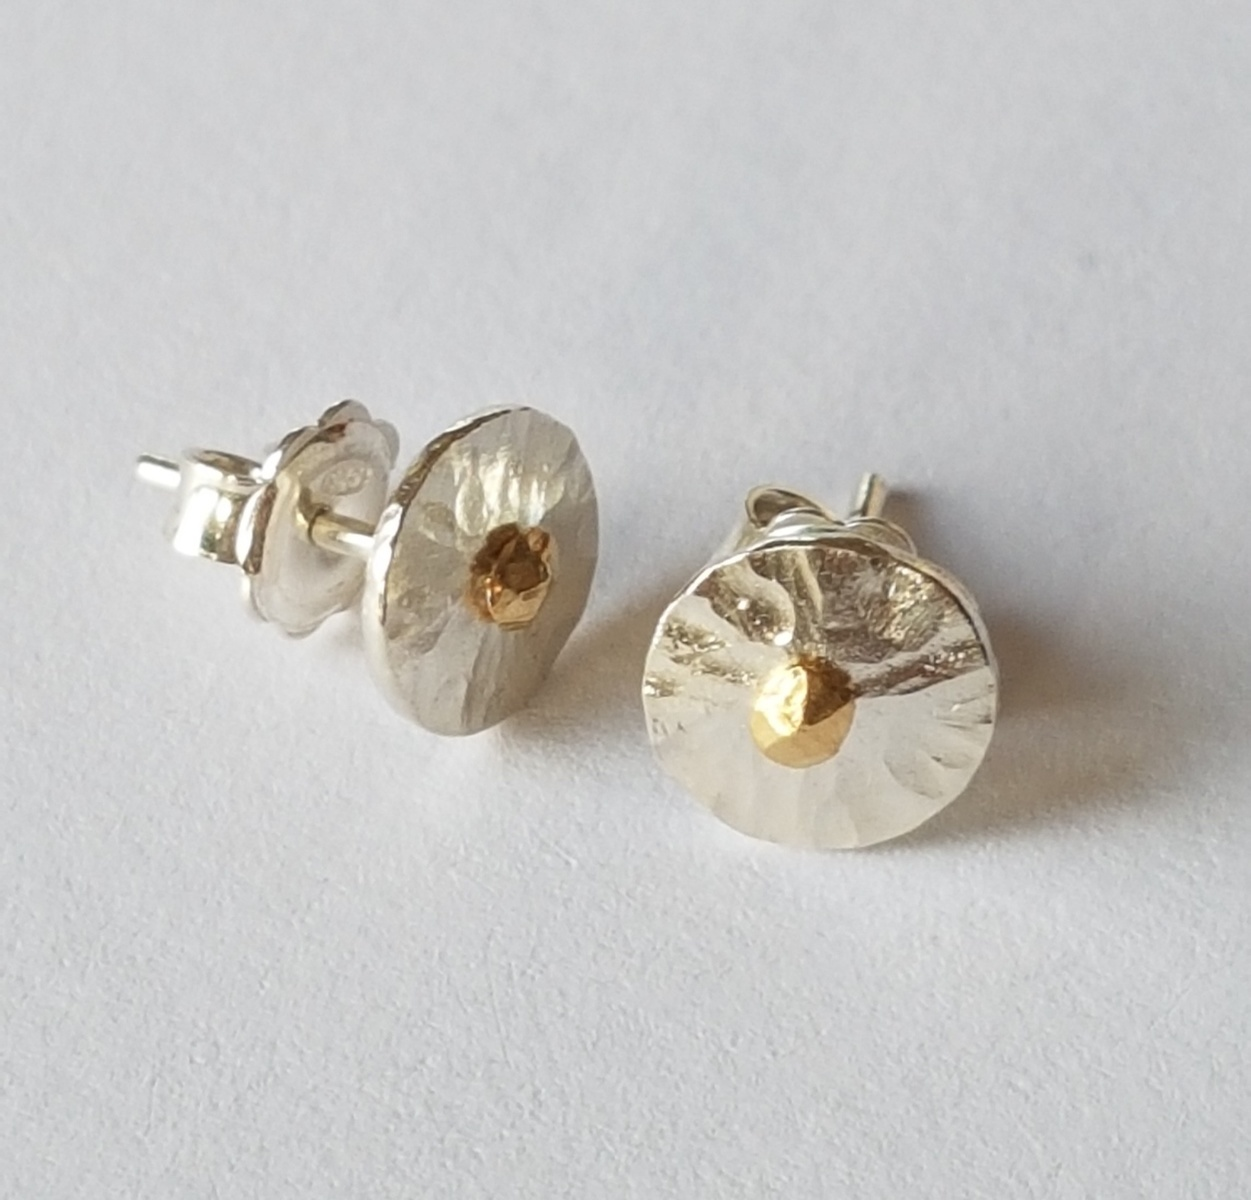 Silver Peel small stud earrings